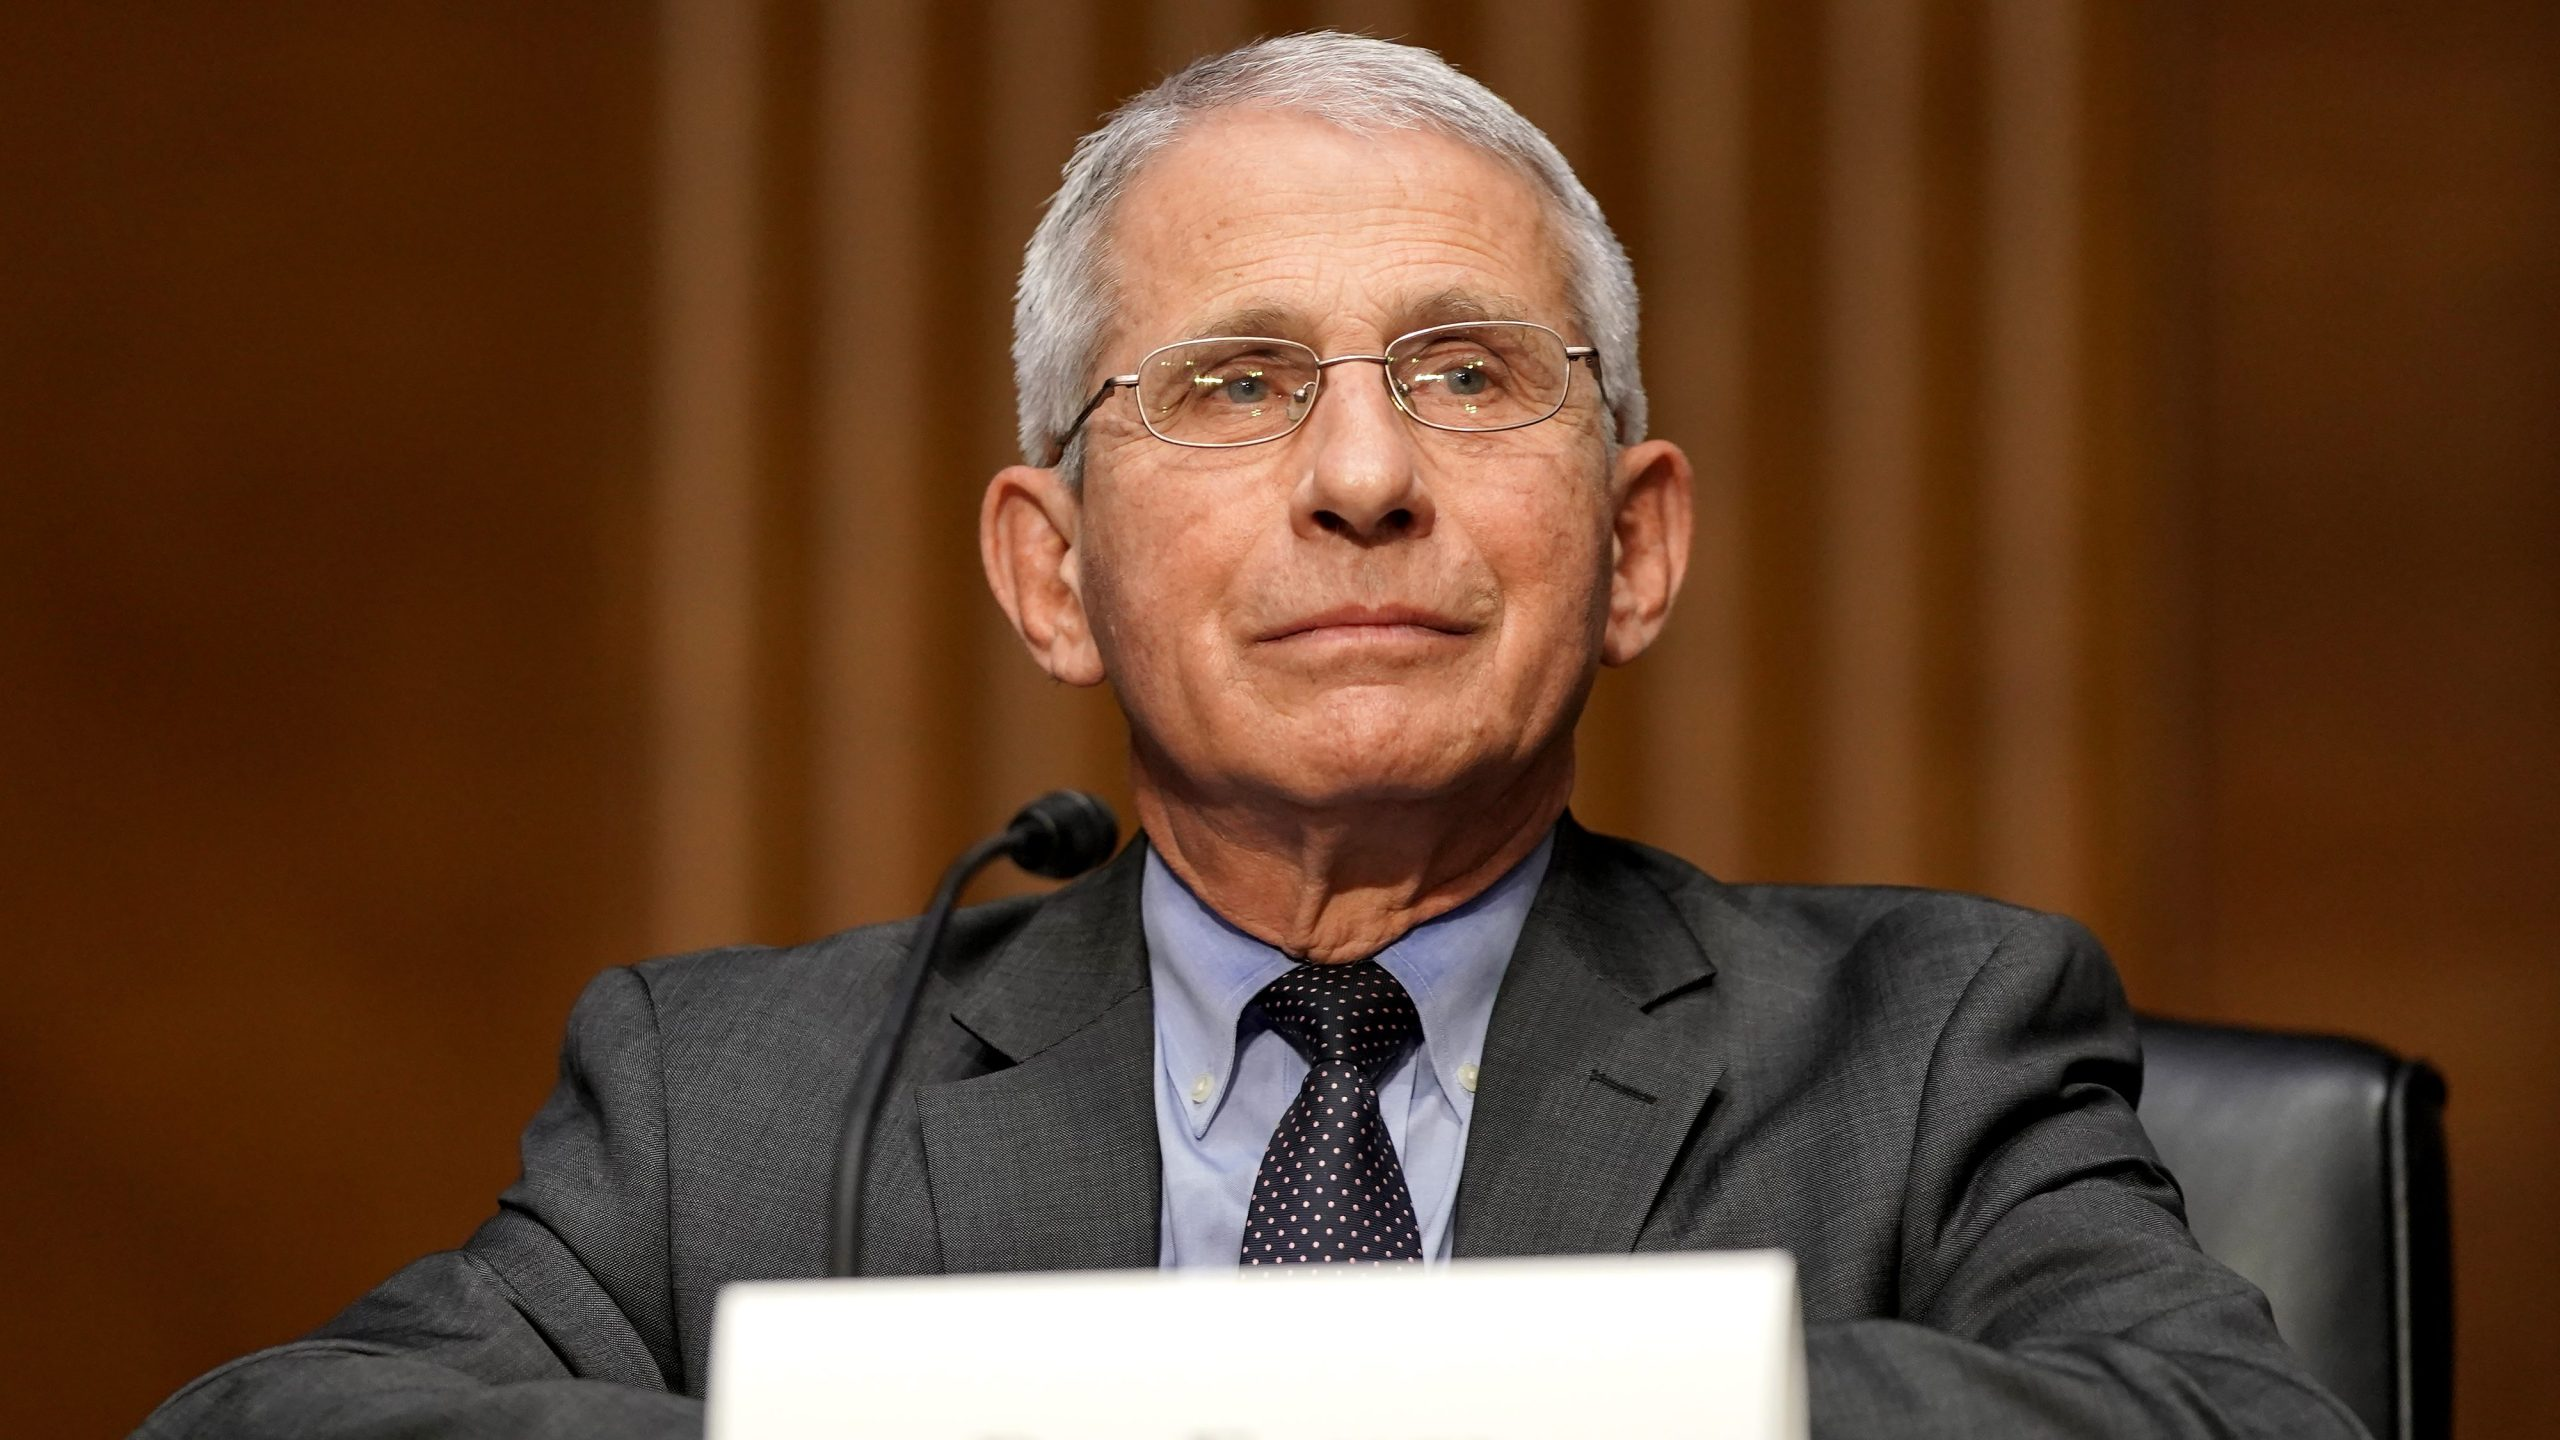 Dr. Anthony Fauci emails